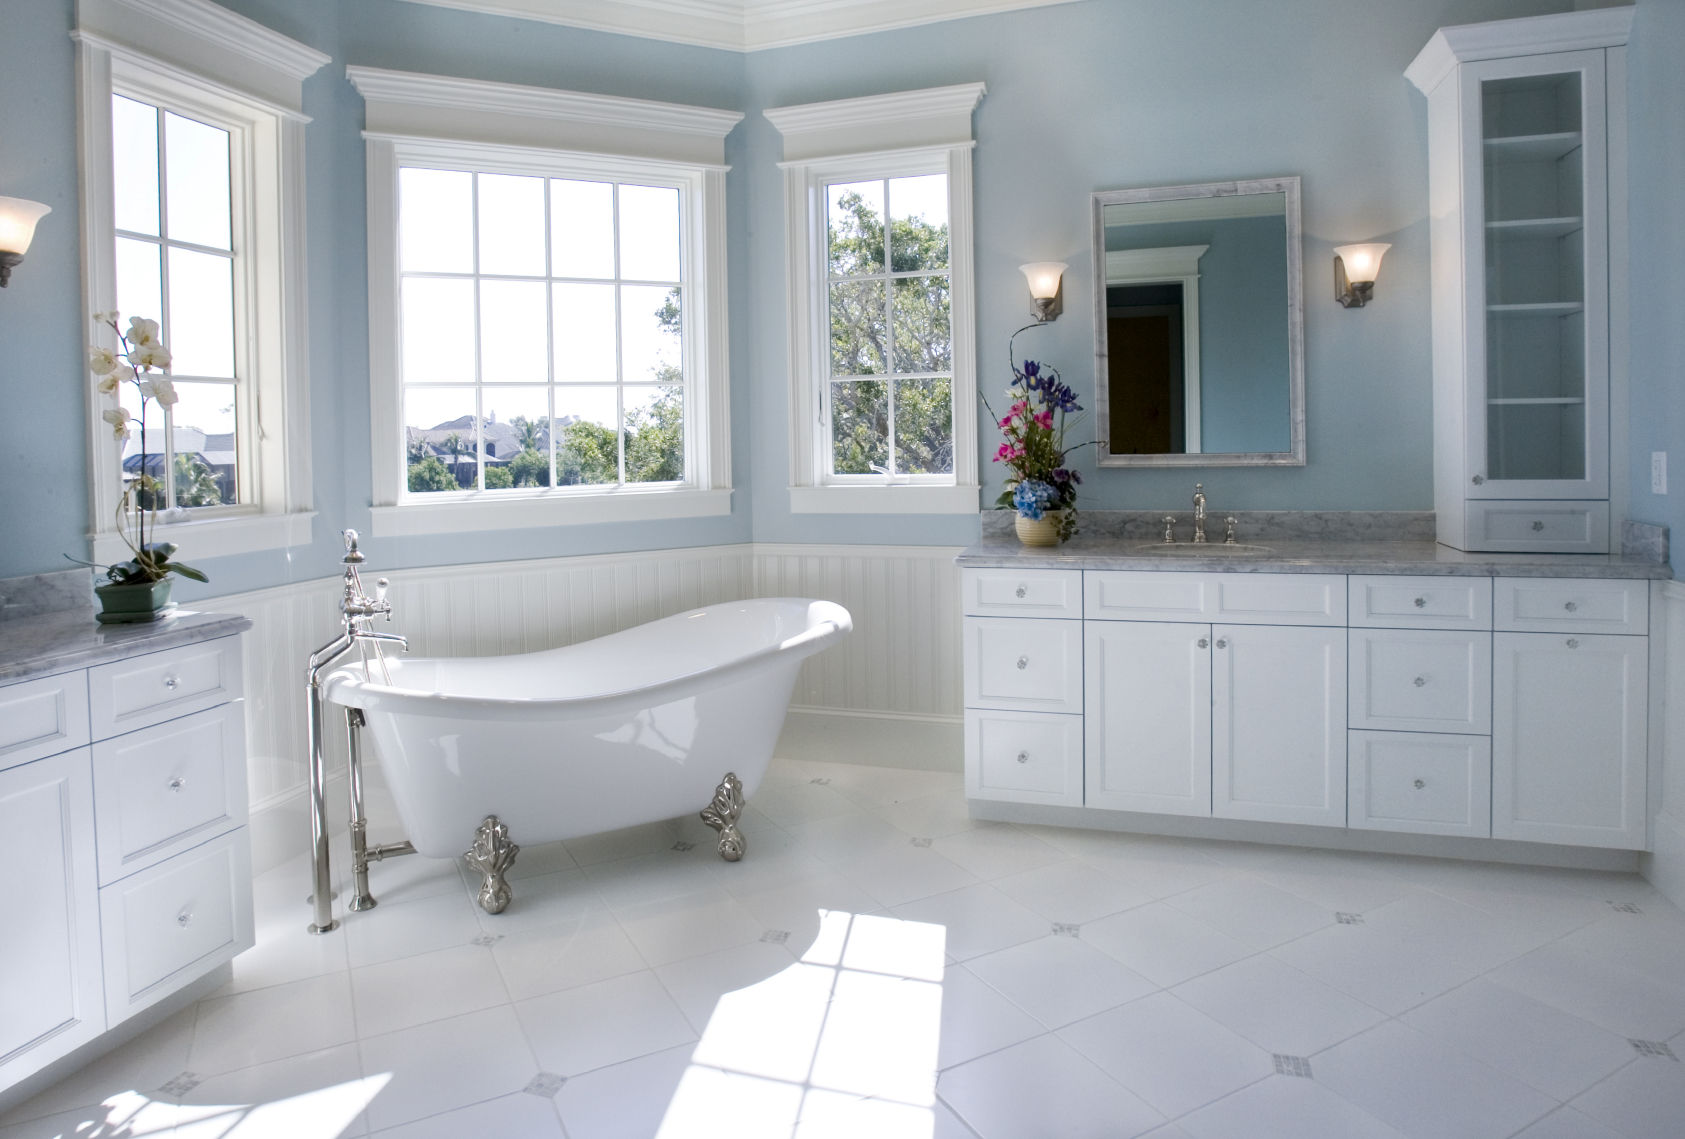 stylish country style bathrooms model-Luxury Country Style Bathrooms Model